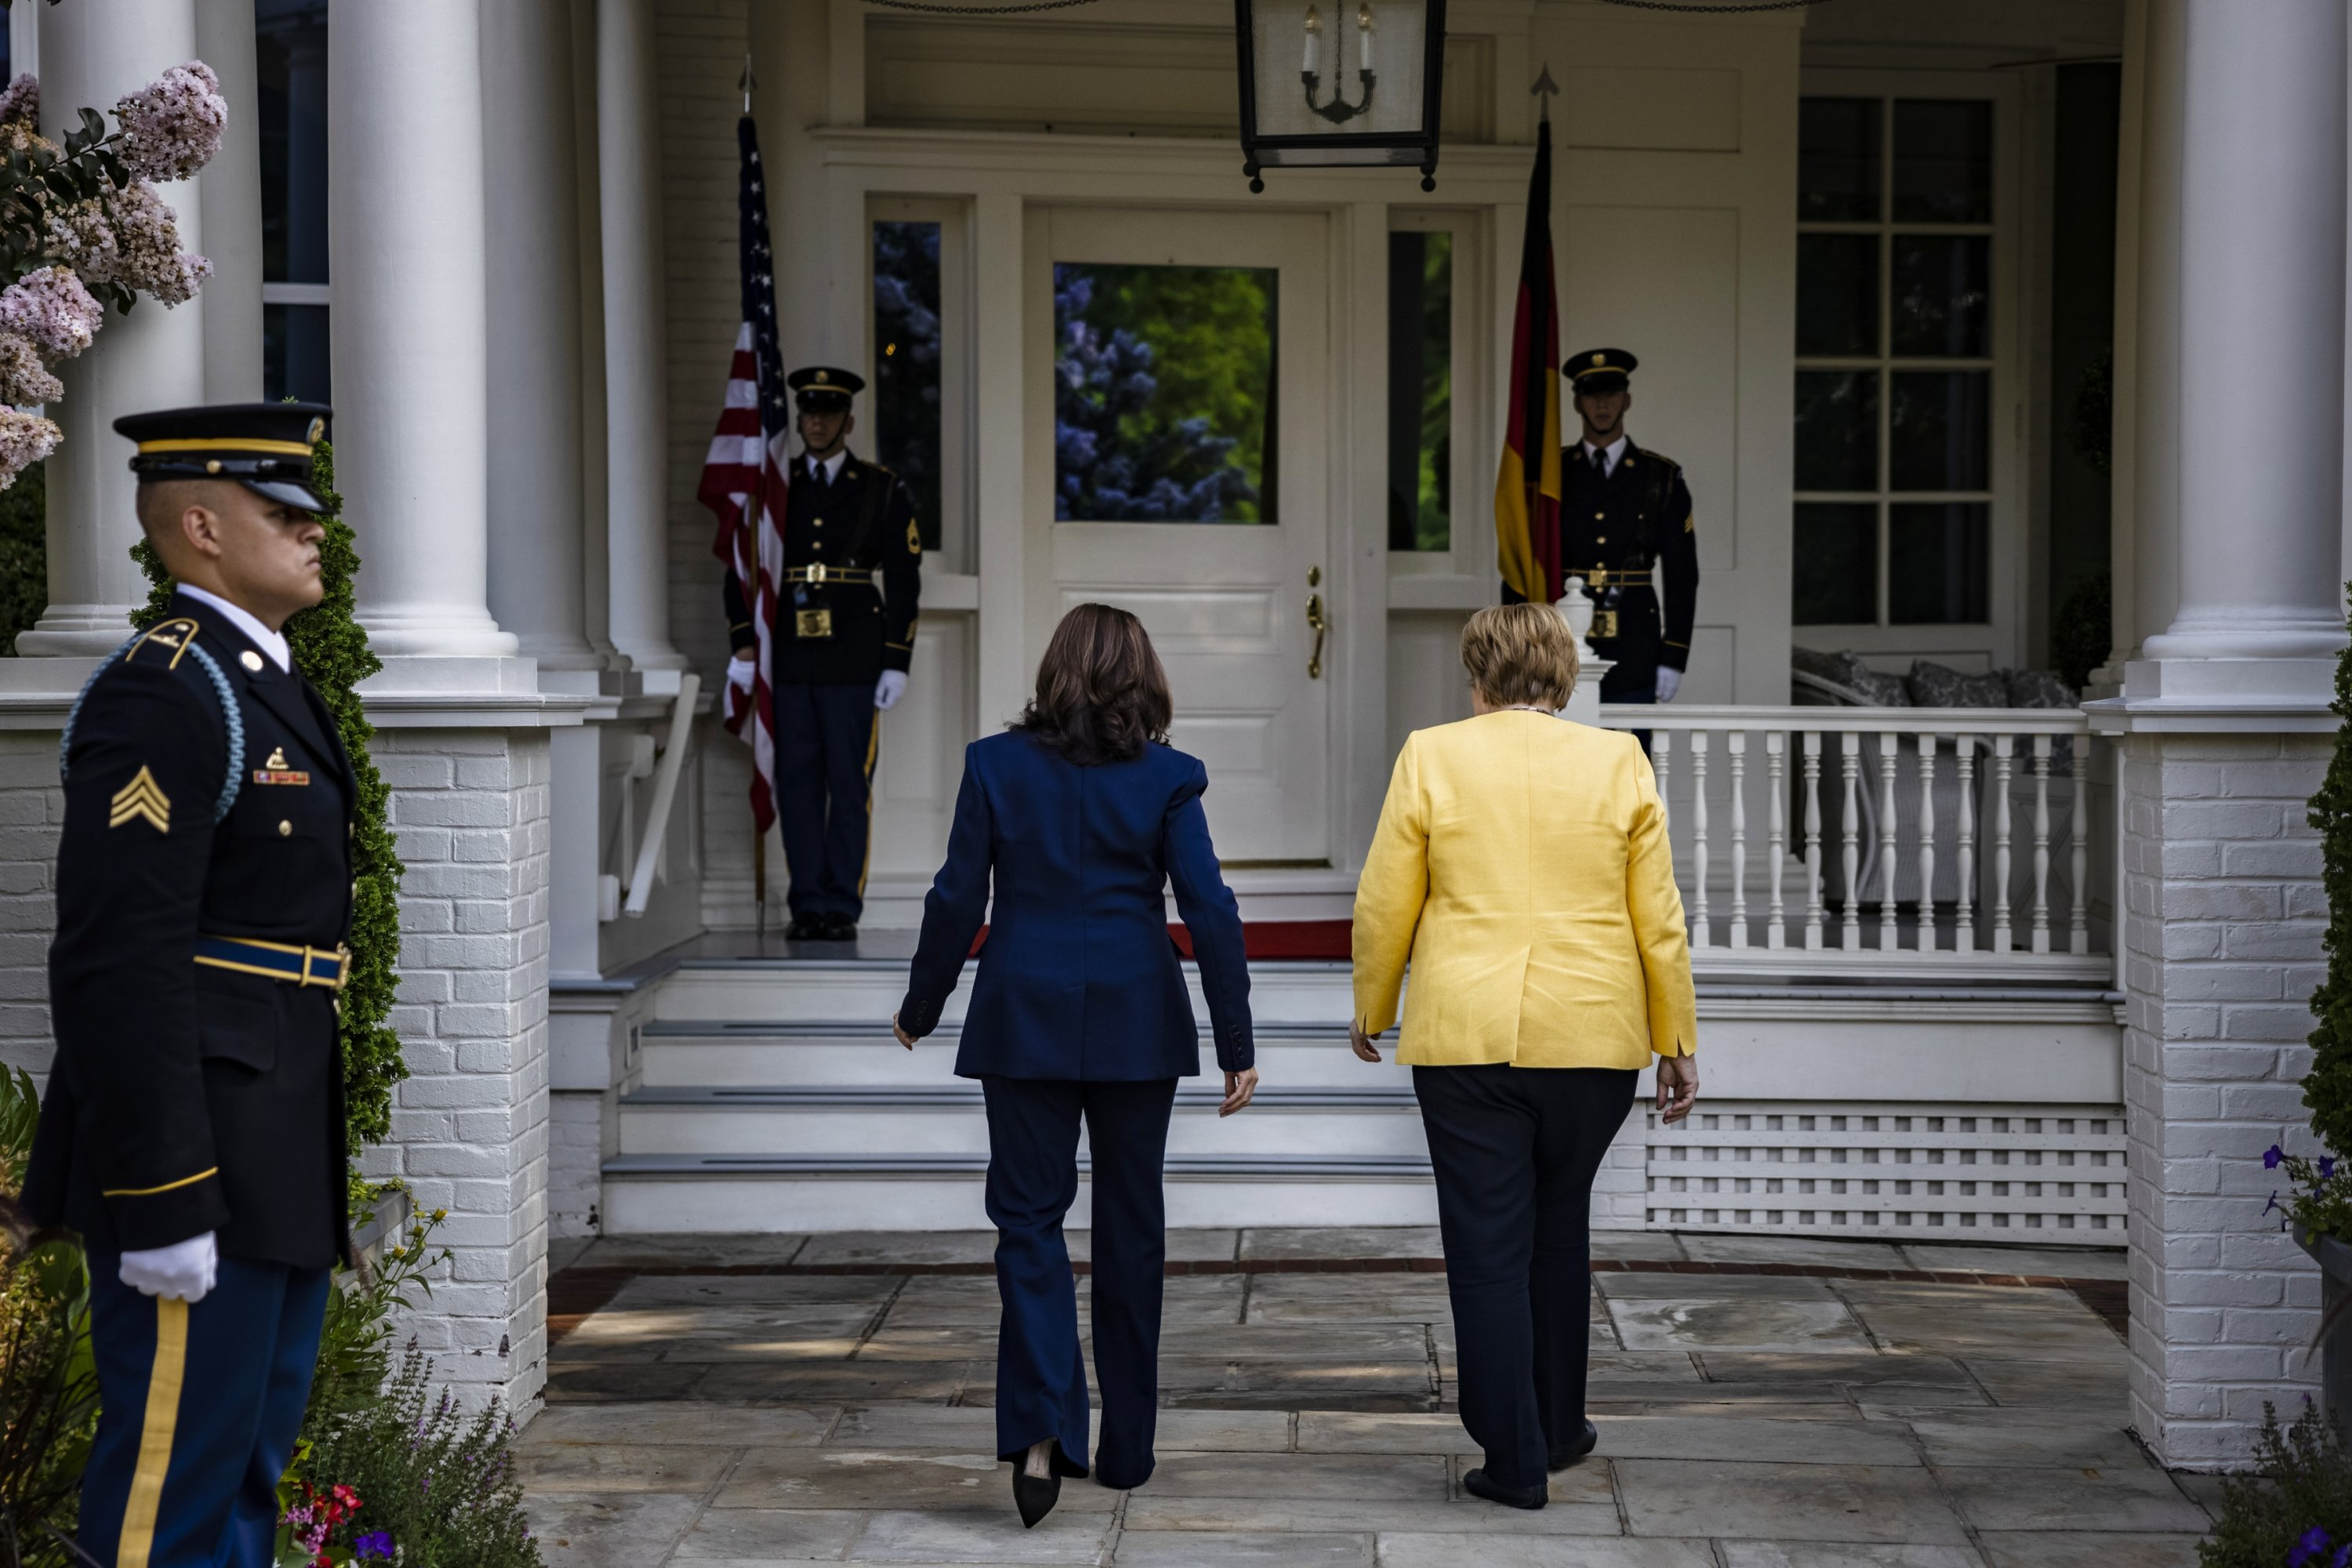 U.S. Vice President Kamala Harris (L) welcomes German Chancellor Angela Merkel for a working breakfast to the Vice President's residence at One Observatory Circle in Washington, DC, USA, 15 July 2021. Merkel is on an official visit to Washington. (EPA Photo)